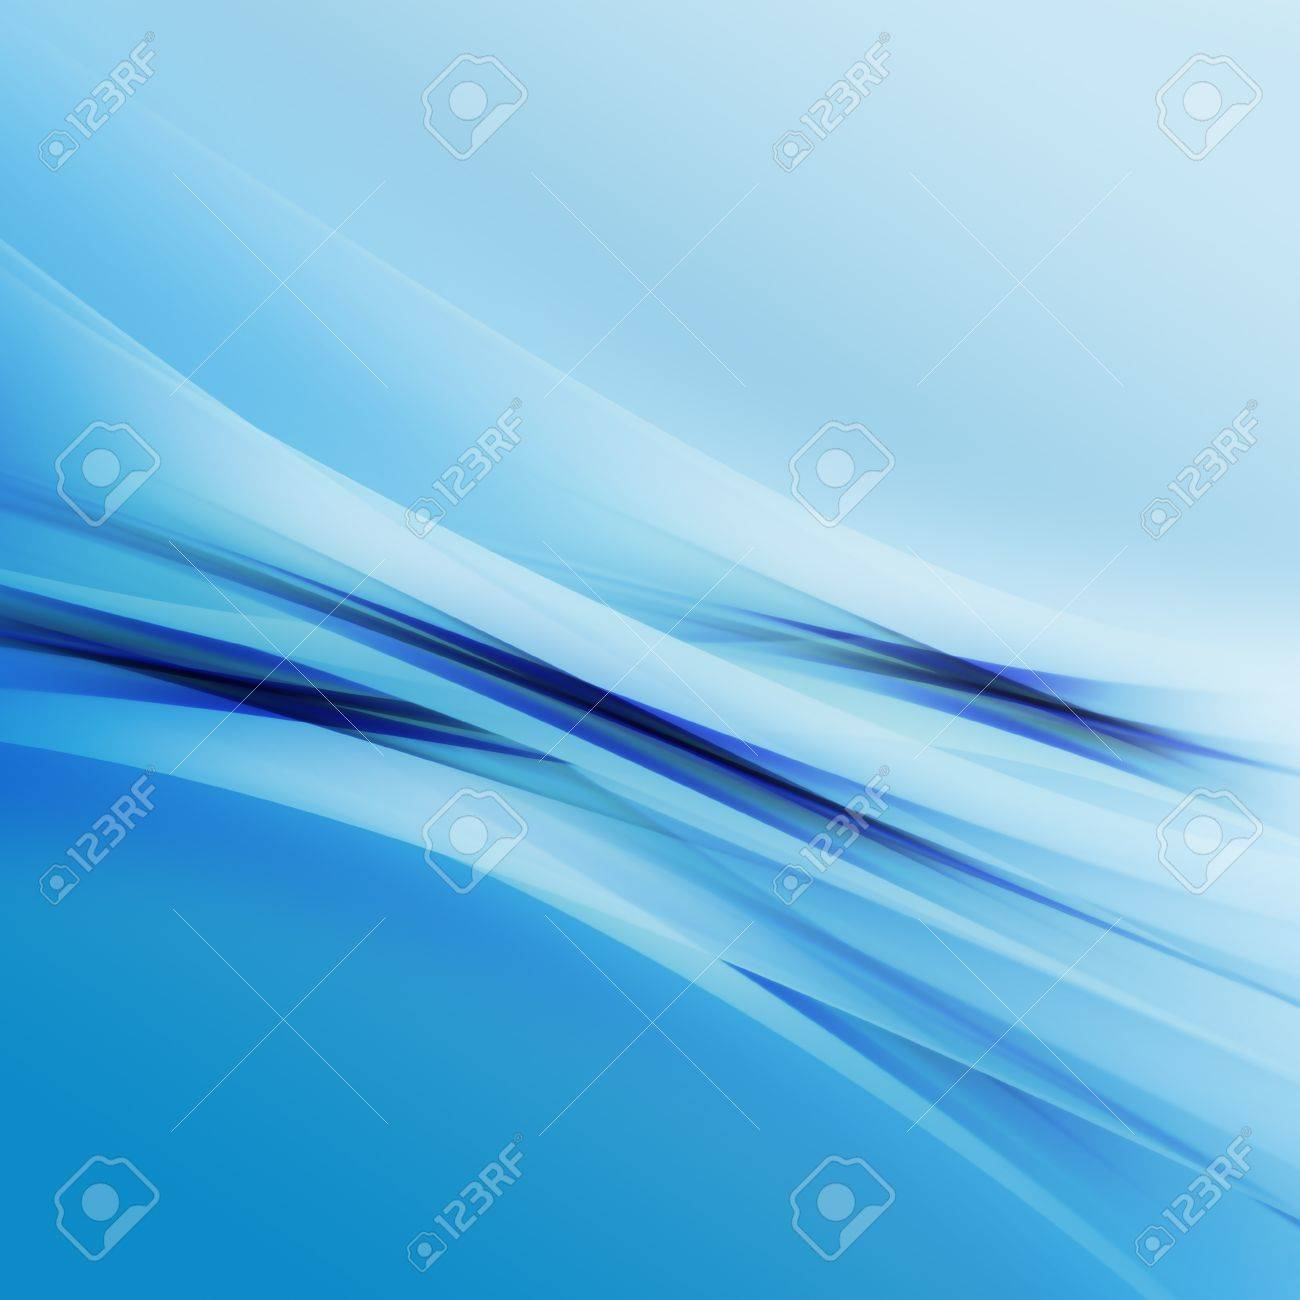 Abstract elegant background design with space for your text Stock Photo - 13700374